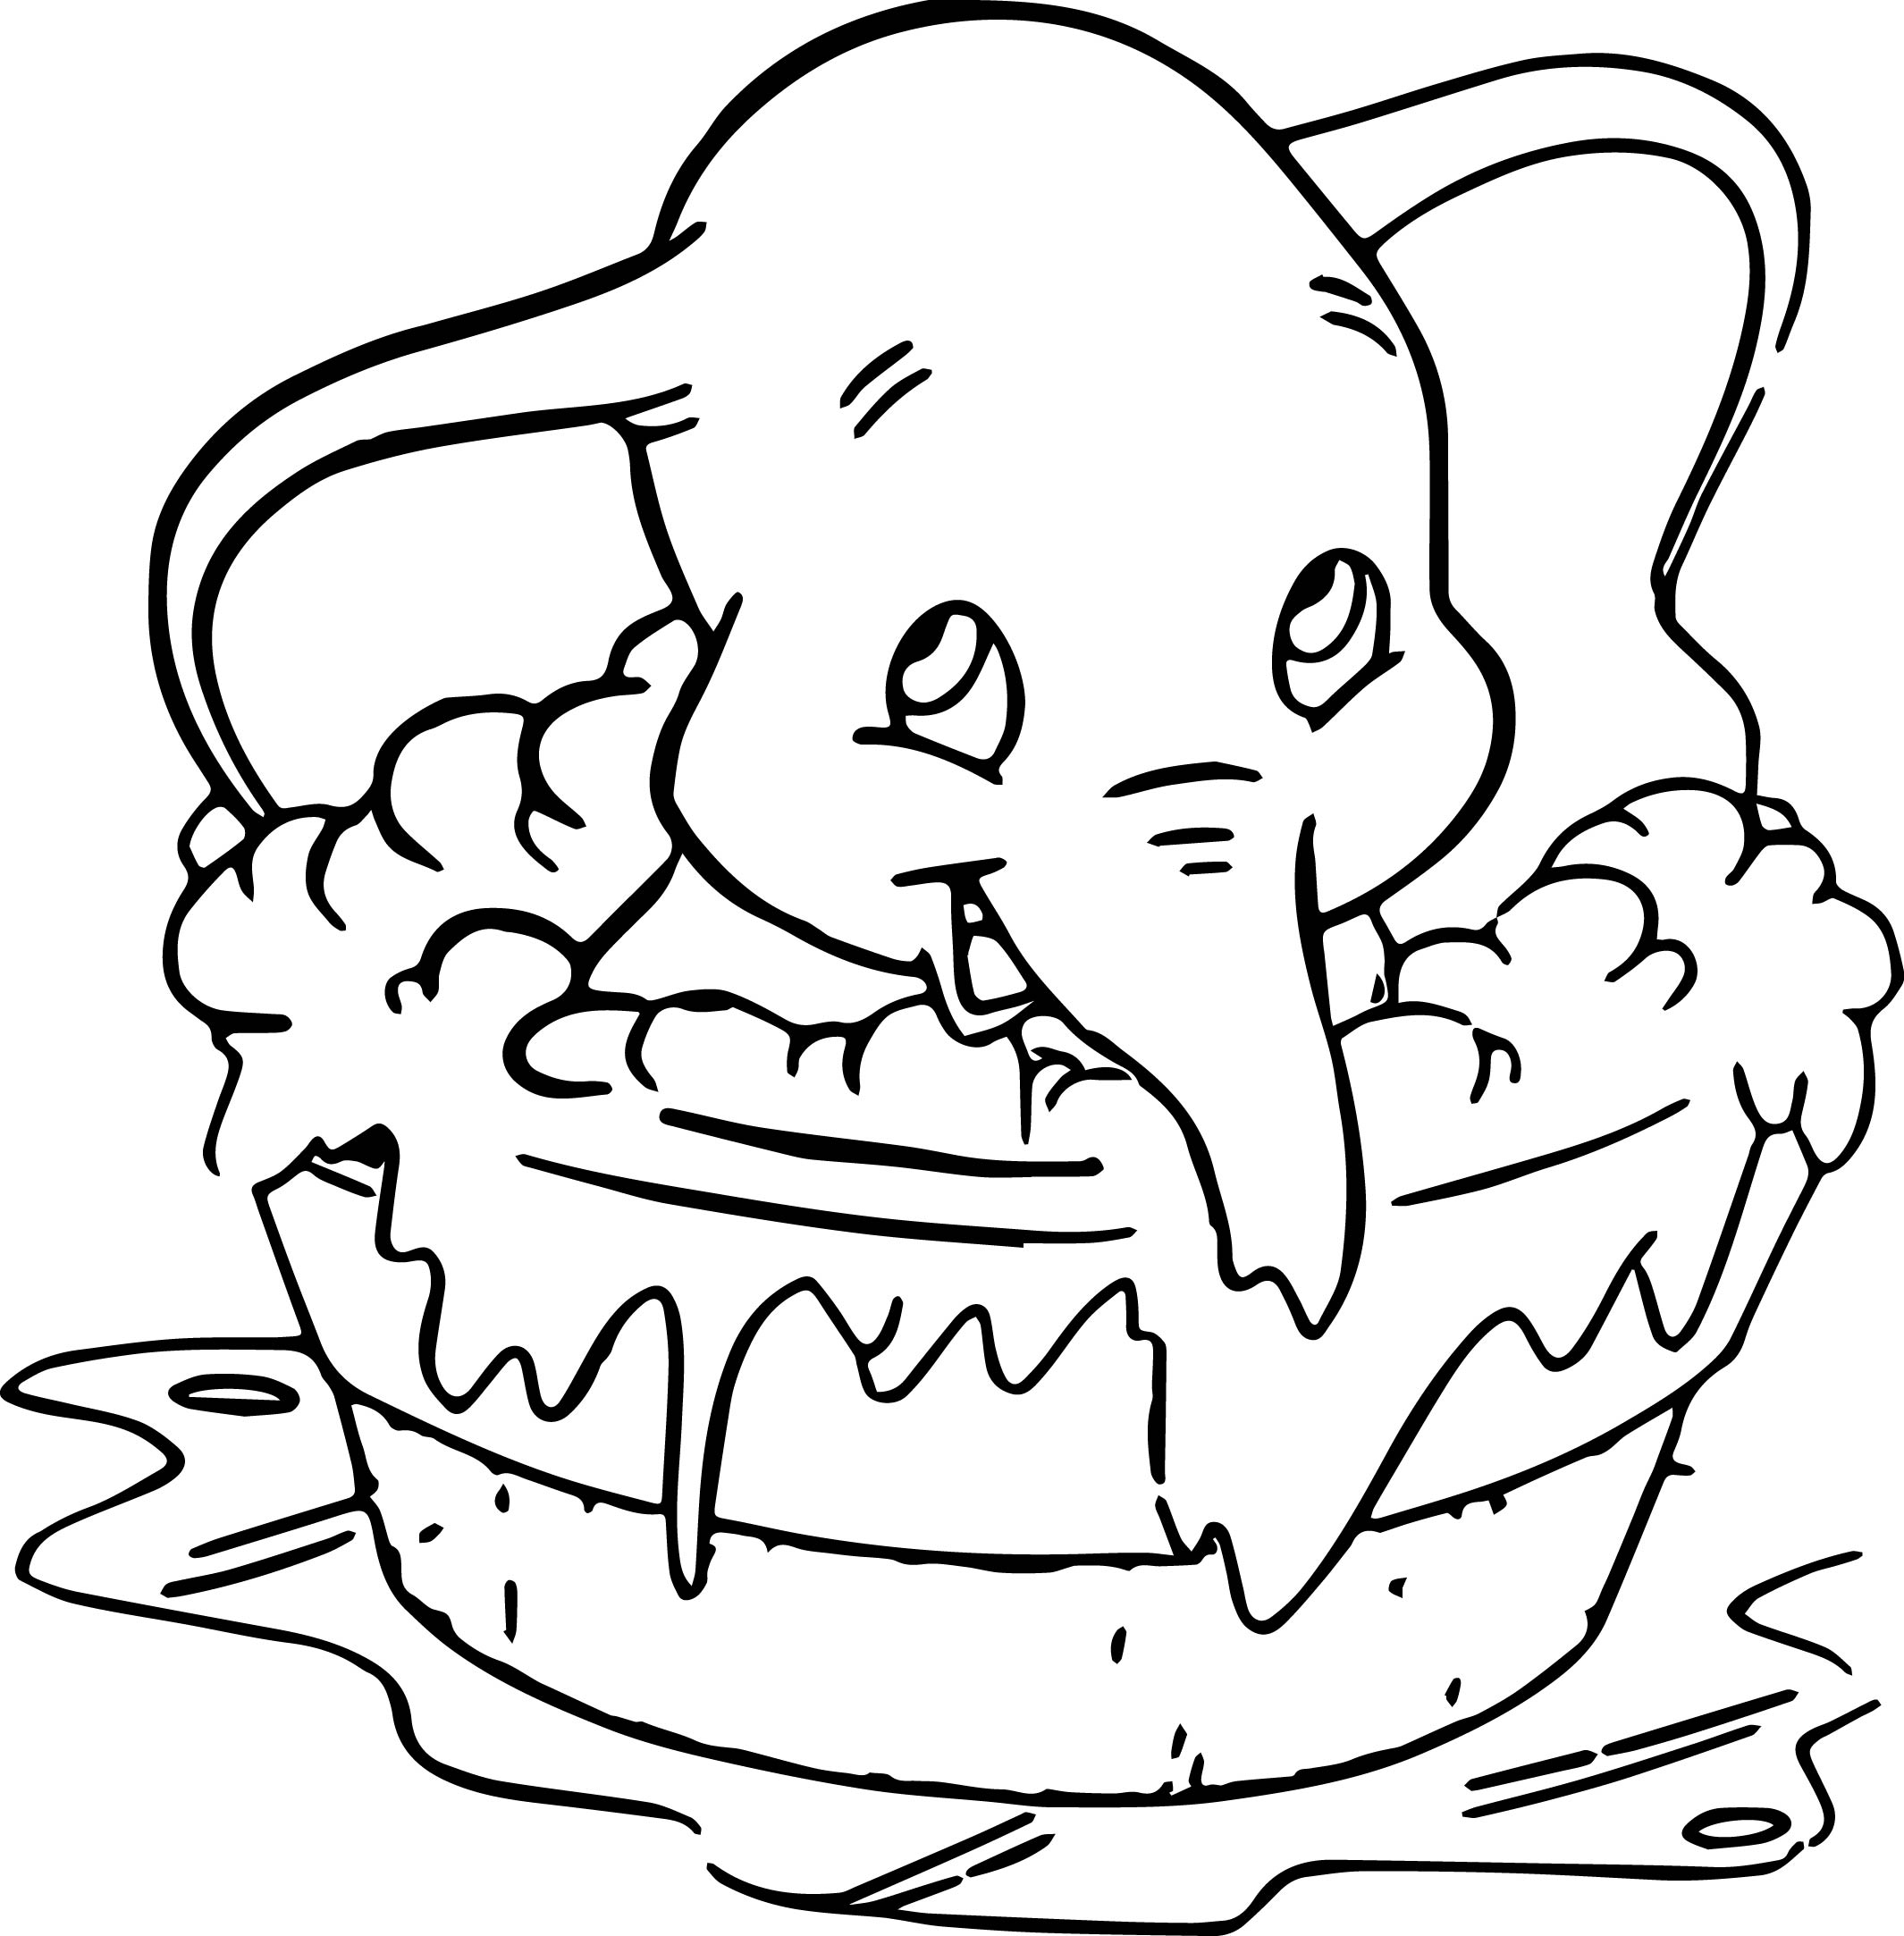 Disney Dumbo Elephant Coloring Pages